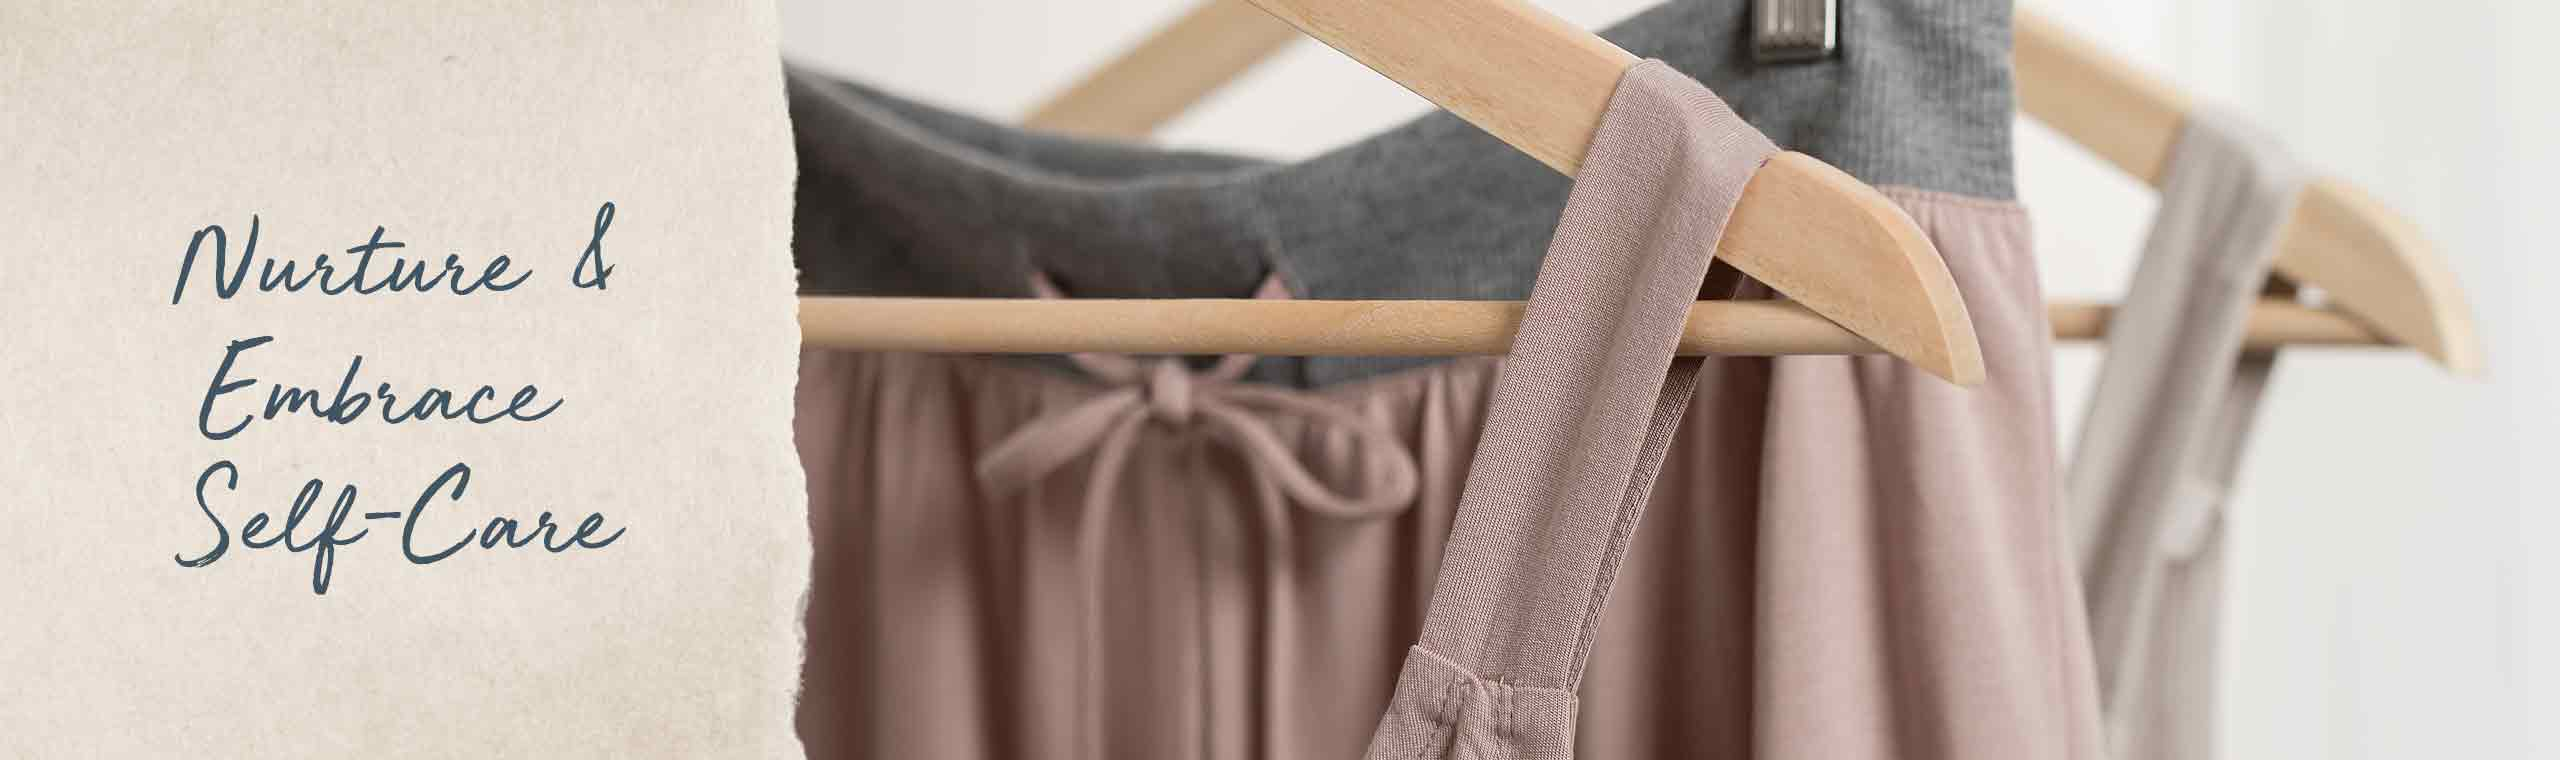 Nurture and Embrace Self-Care comfortable apparel hanging on a rack